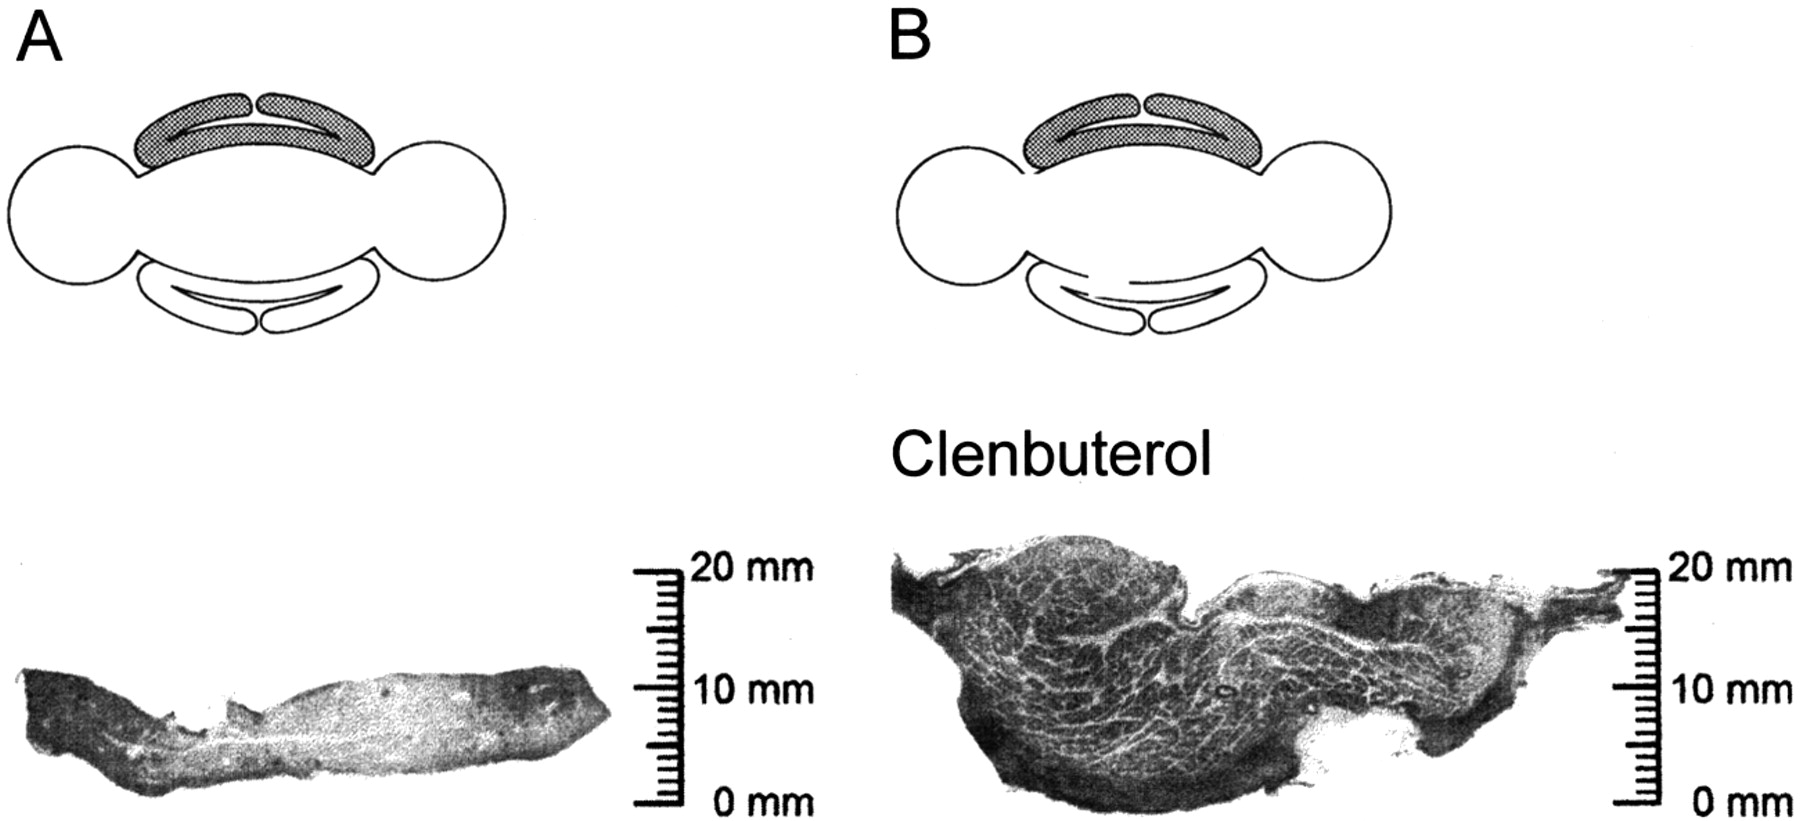 Clenbuterol-Supported Dynamic Training of Skeletal Muscle